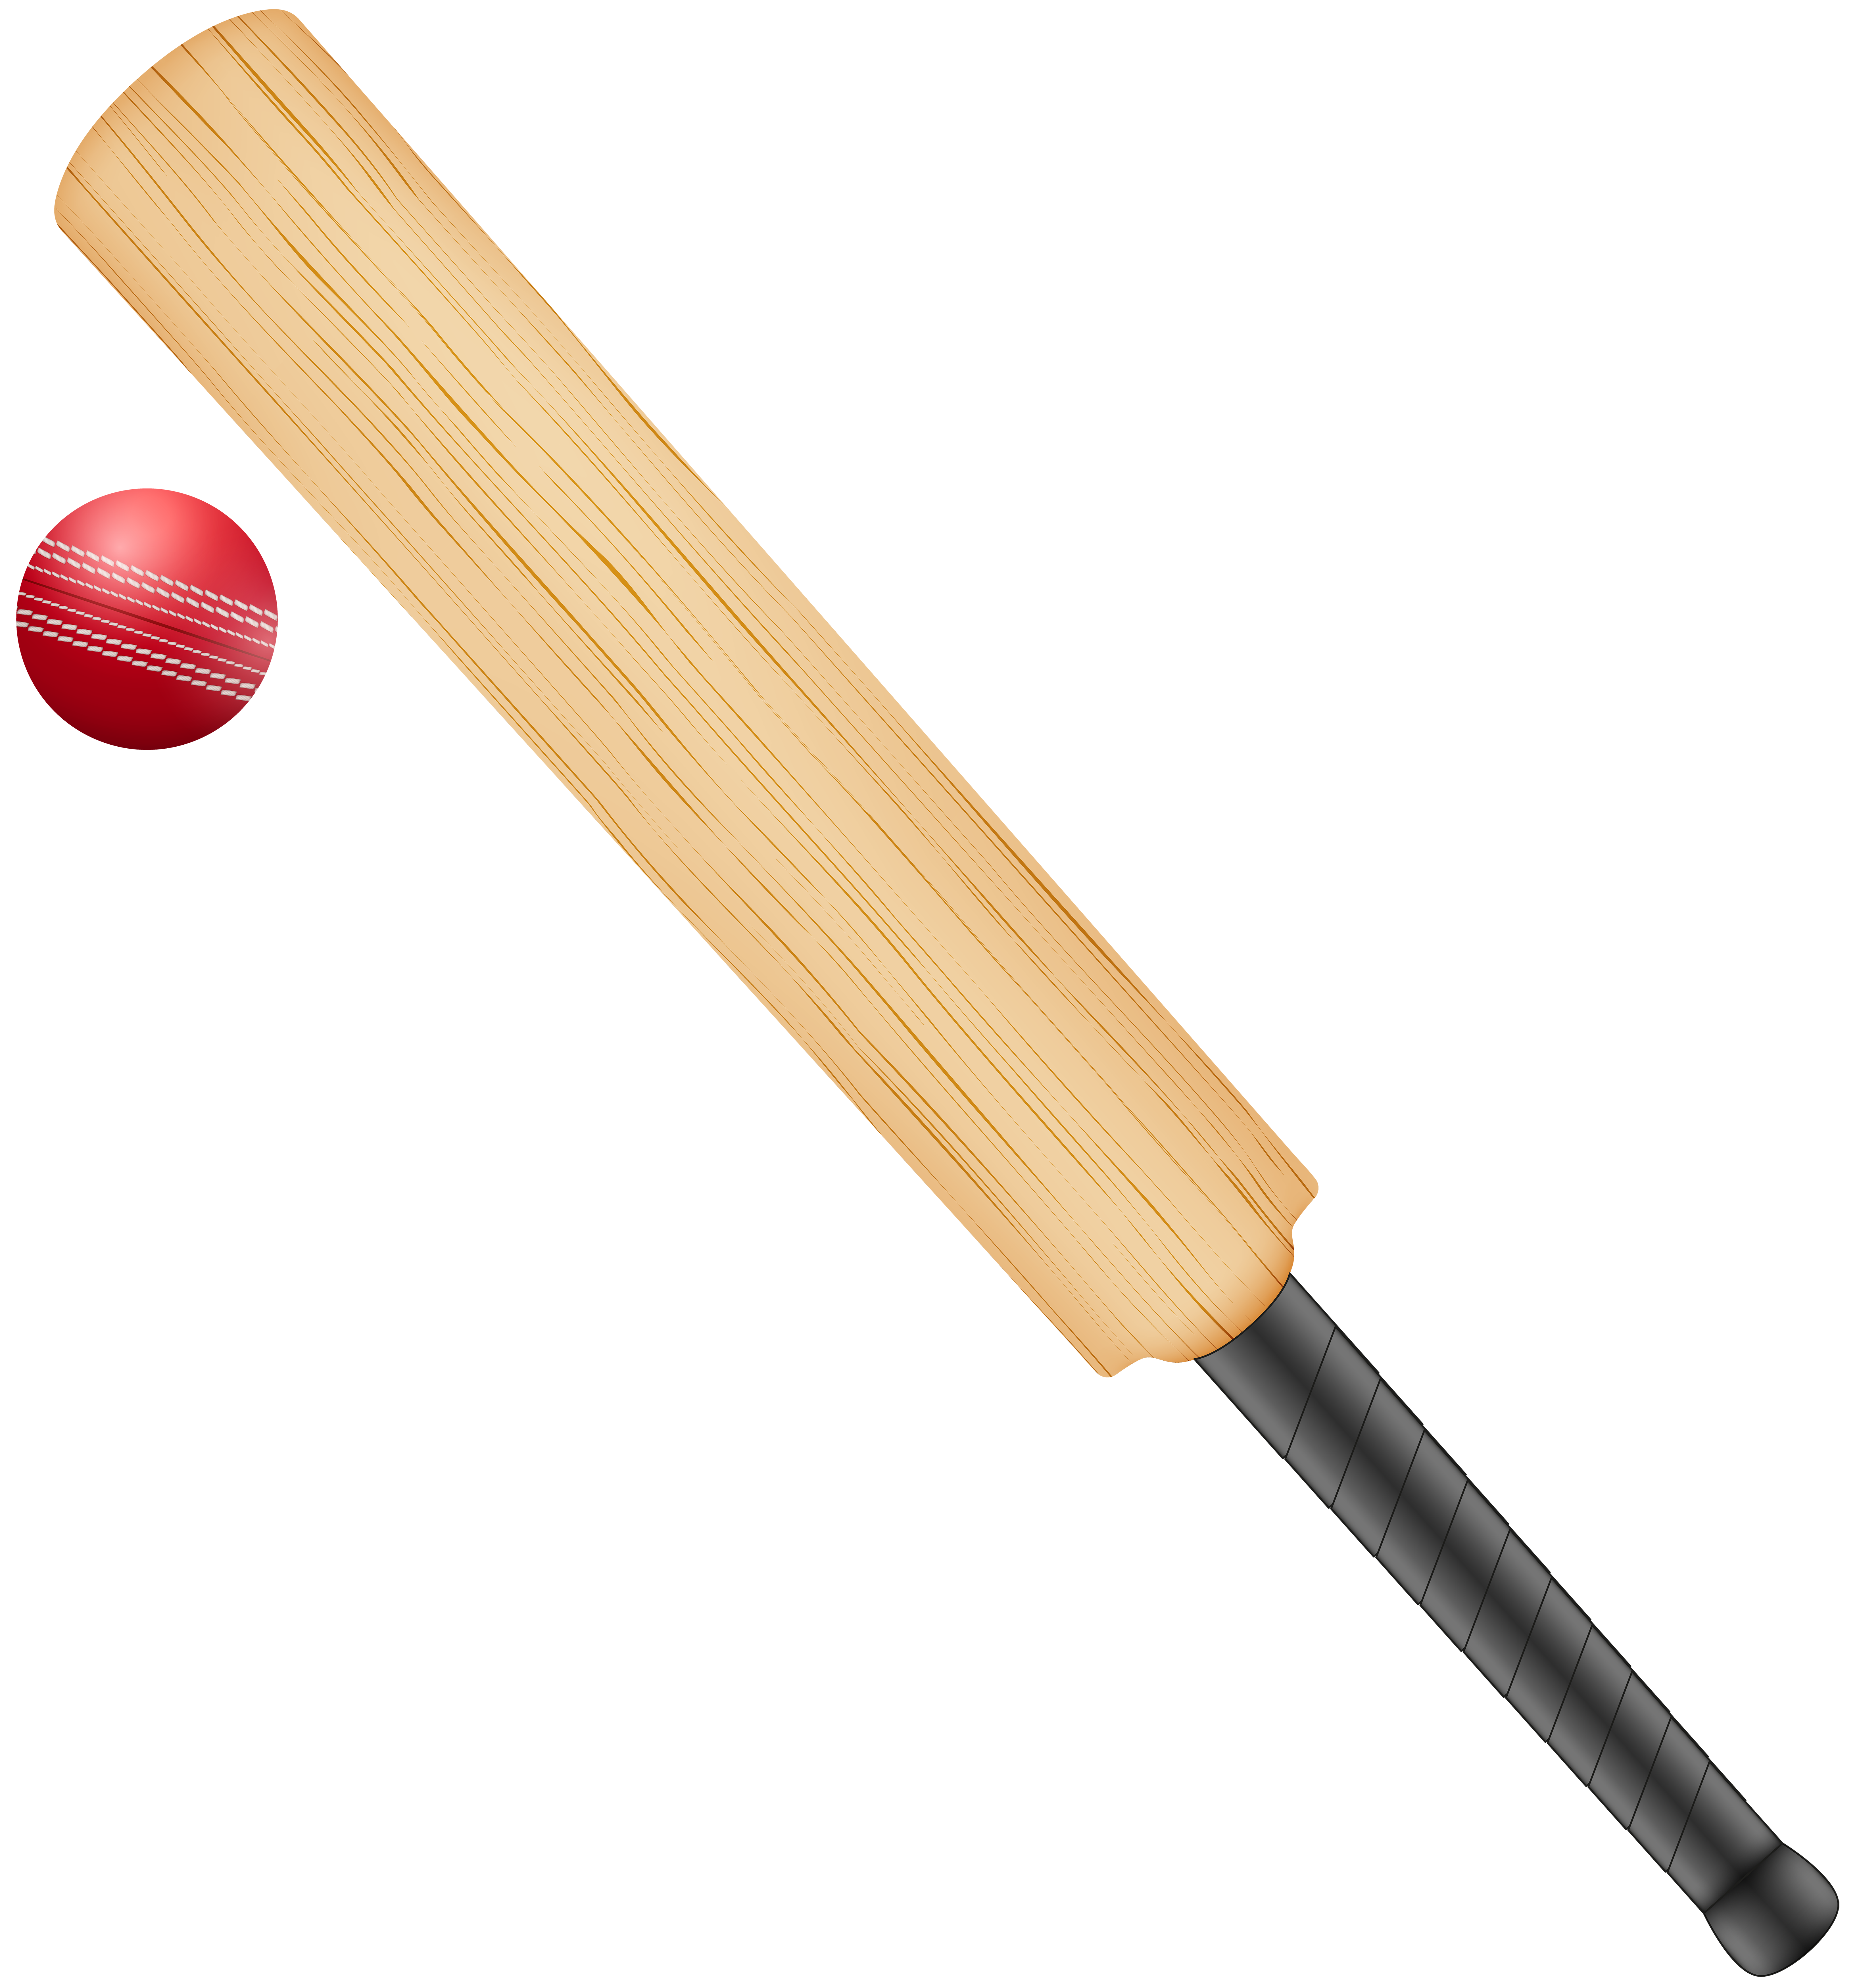 Cricket set transparent png. Sports clipart rounders